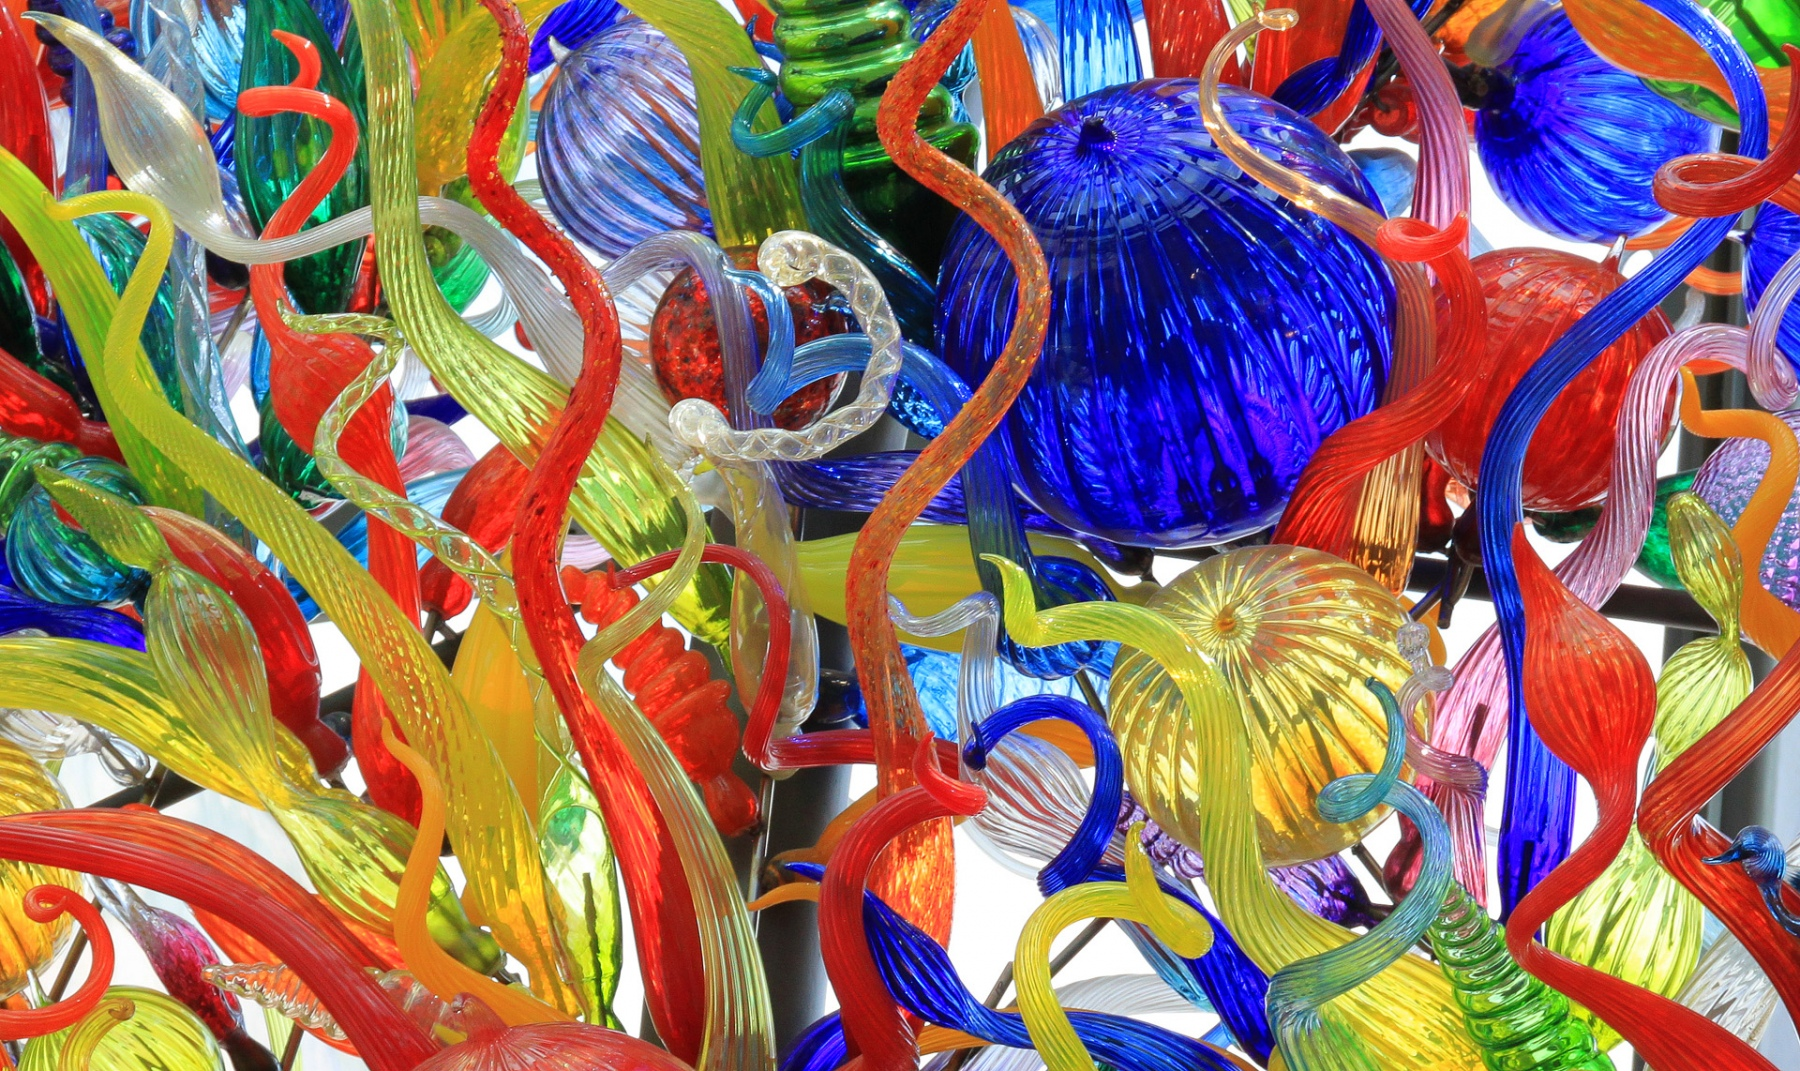 Chihuly Glass - Pat Schwope - SPCC